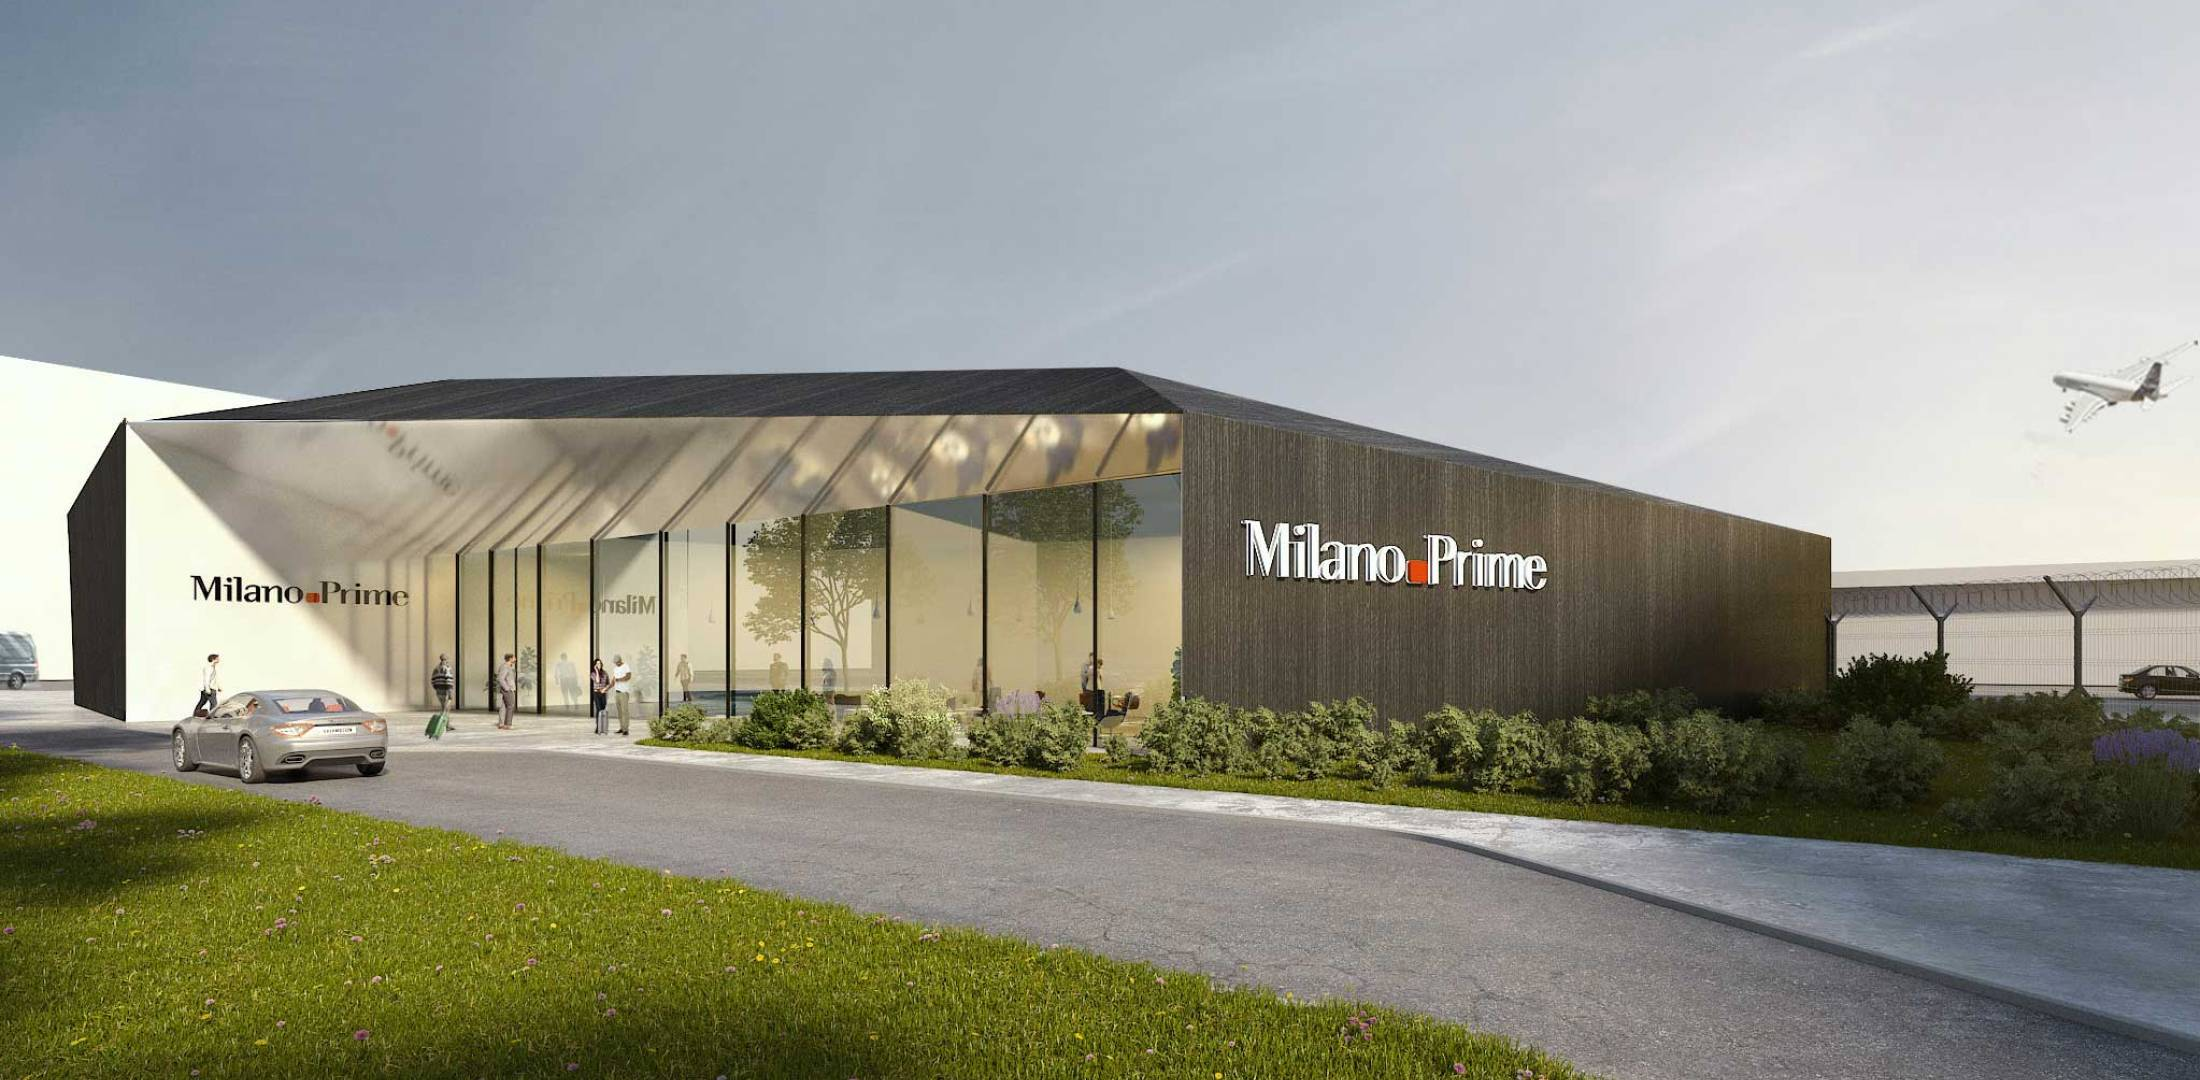 Artist rendering of the Milano Prime FBO at Malpensa